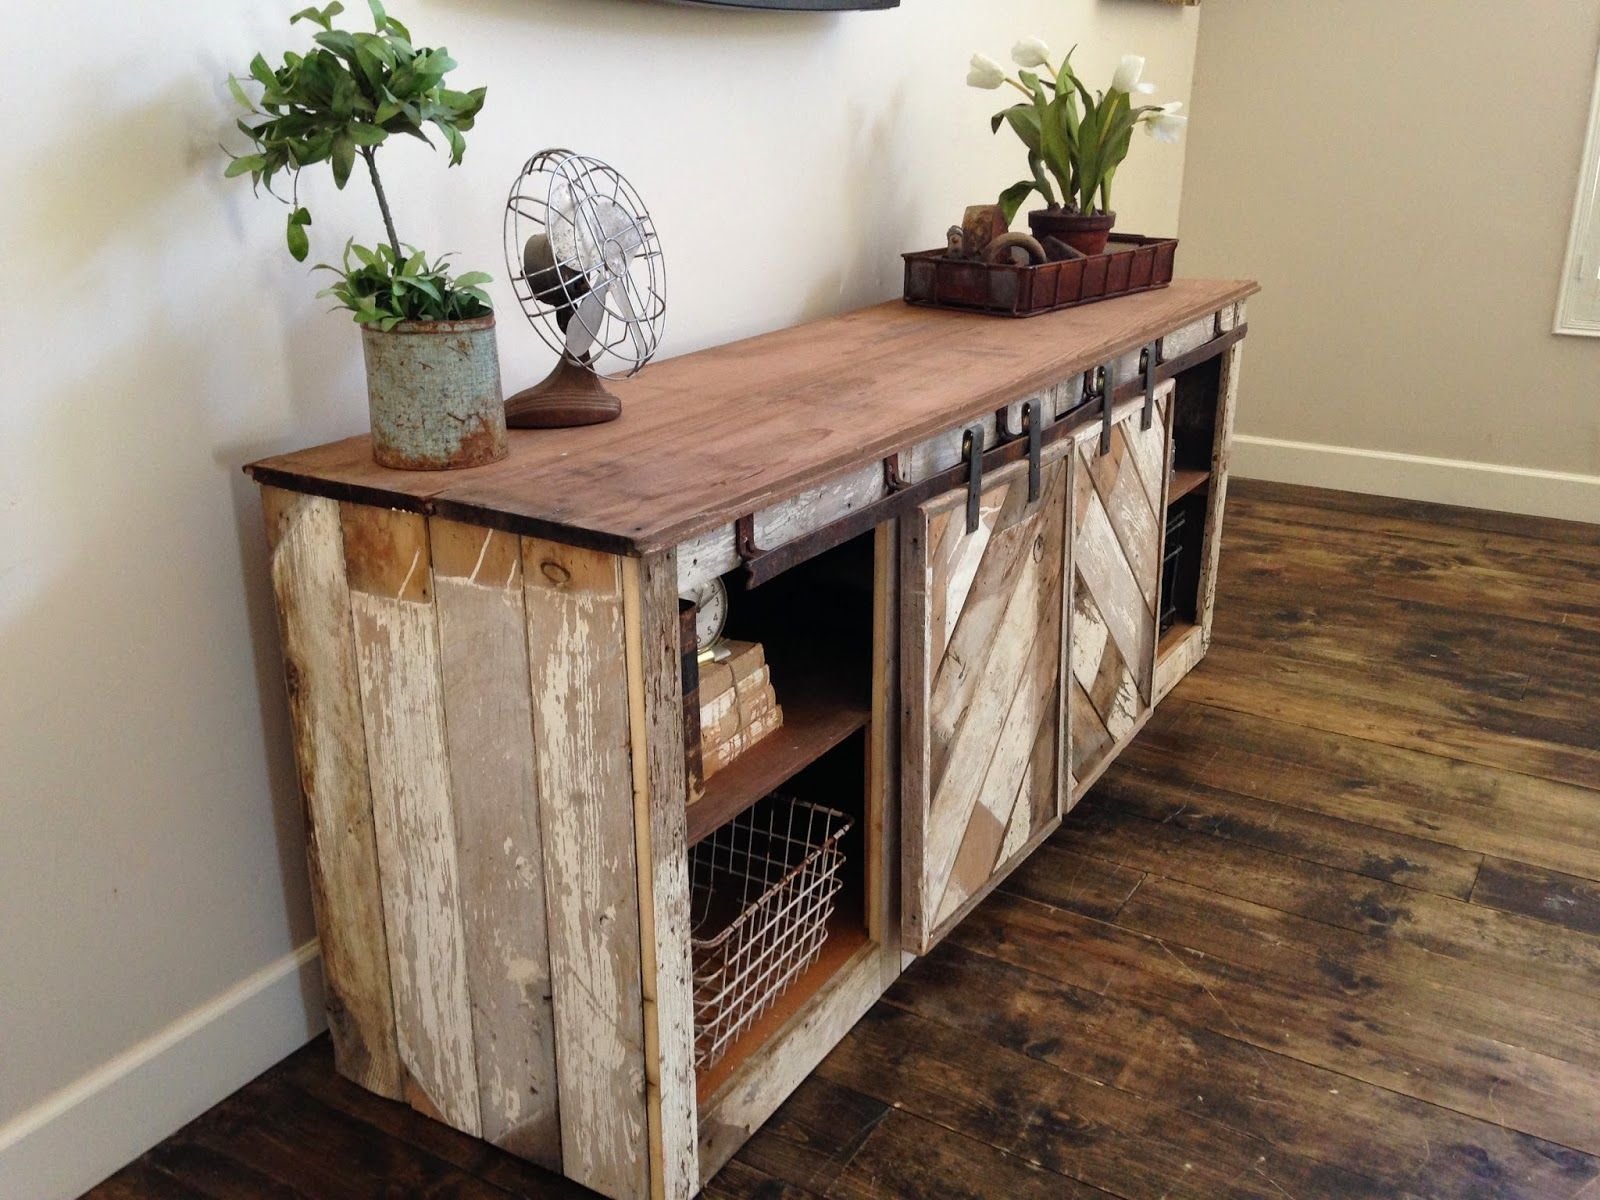 Diy crate console table - Rustic Distressed Barn Door Sliding Console Furniture Could Be A Different Option For A Console Table